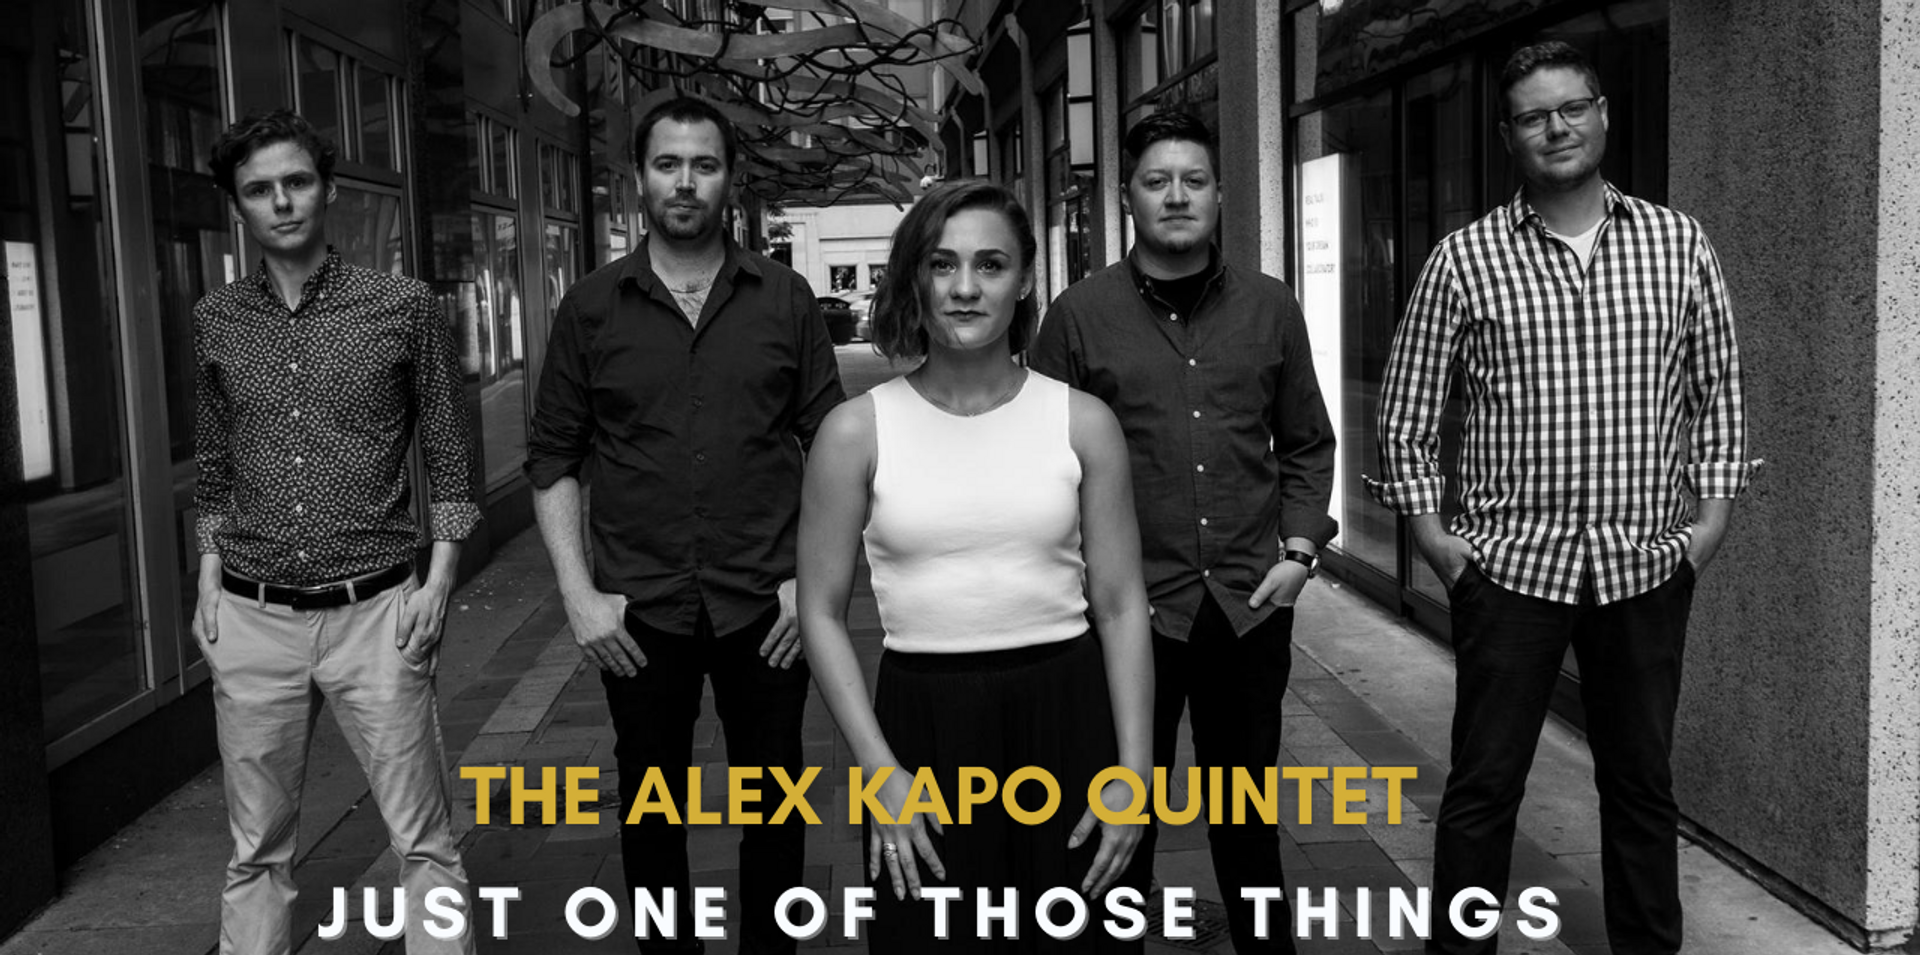 Alex Kapo Quintet at the Rex